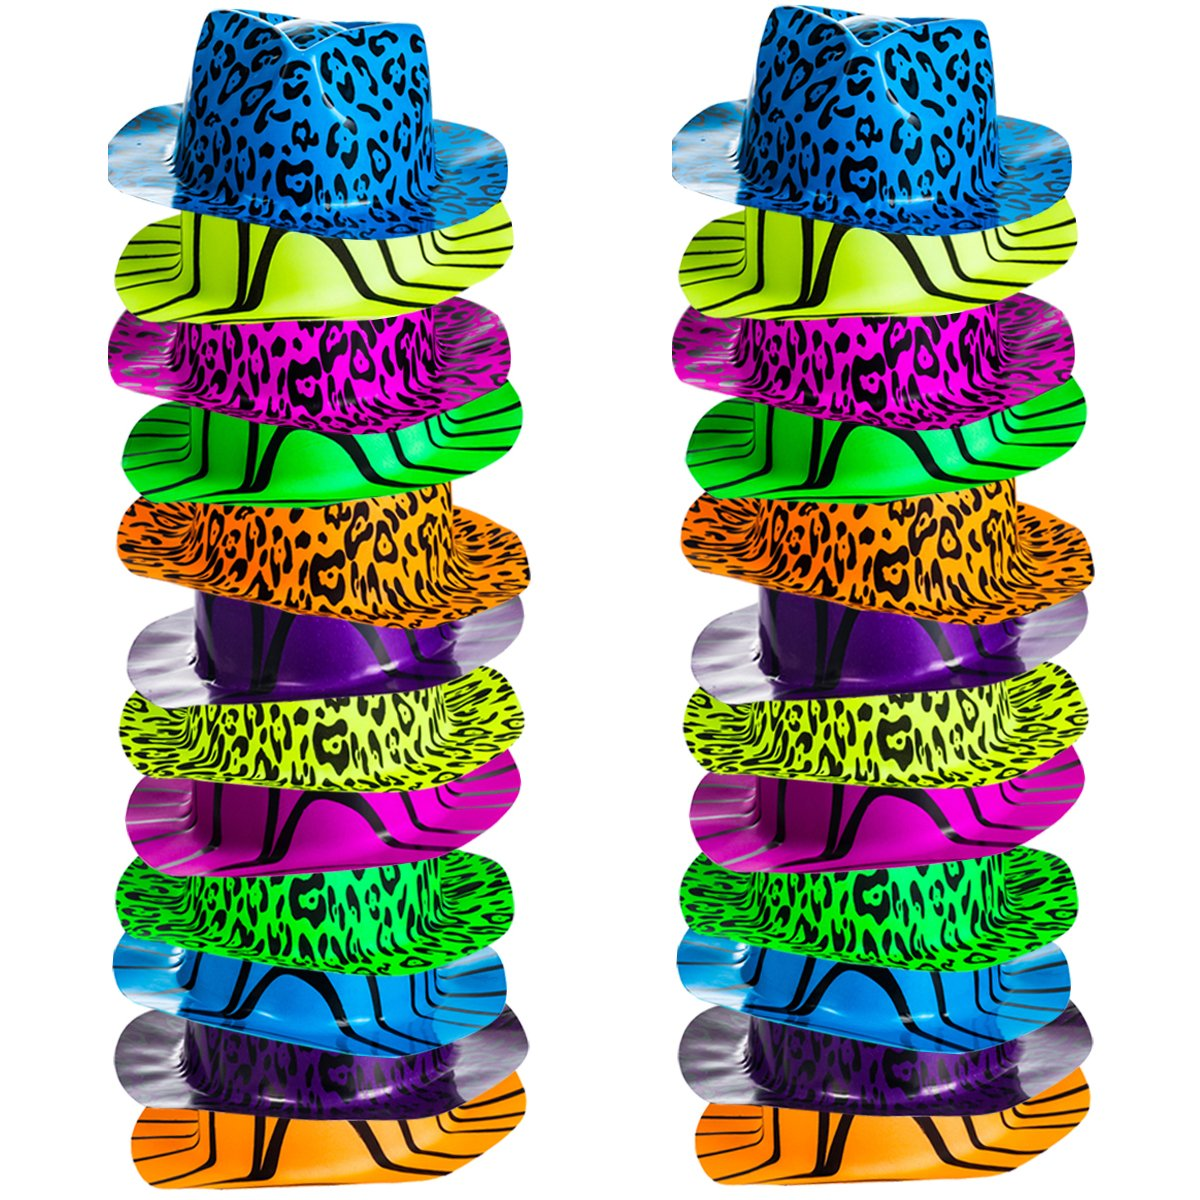 Mardi Gras party favor hats